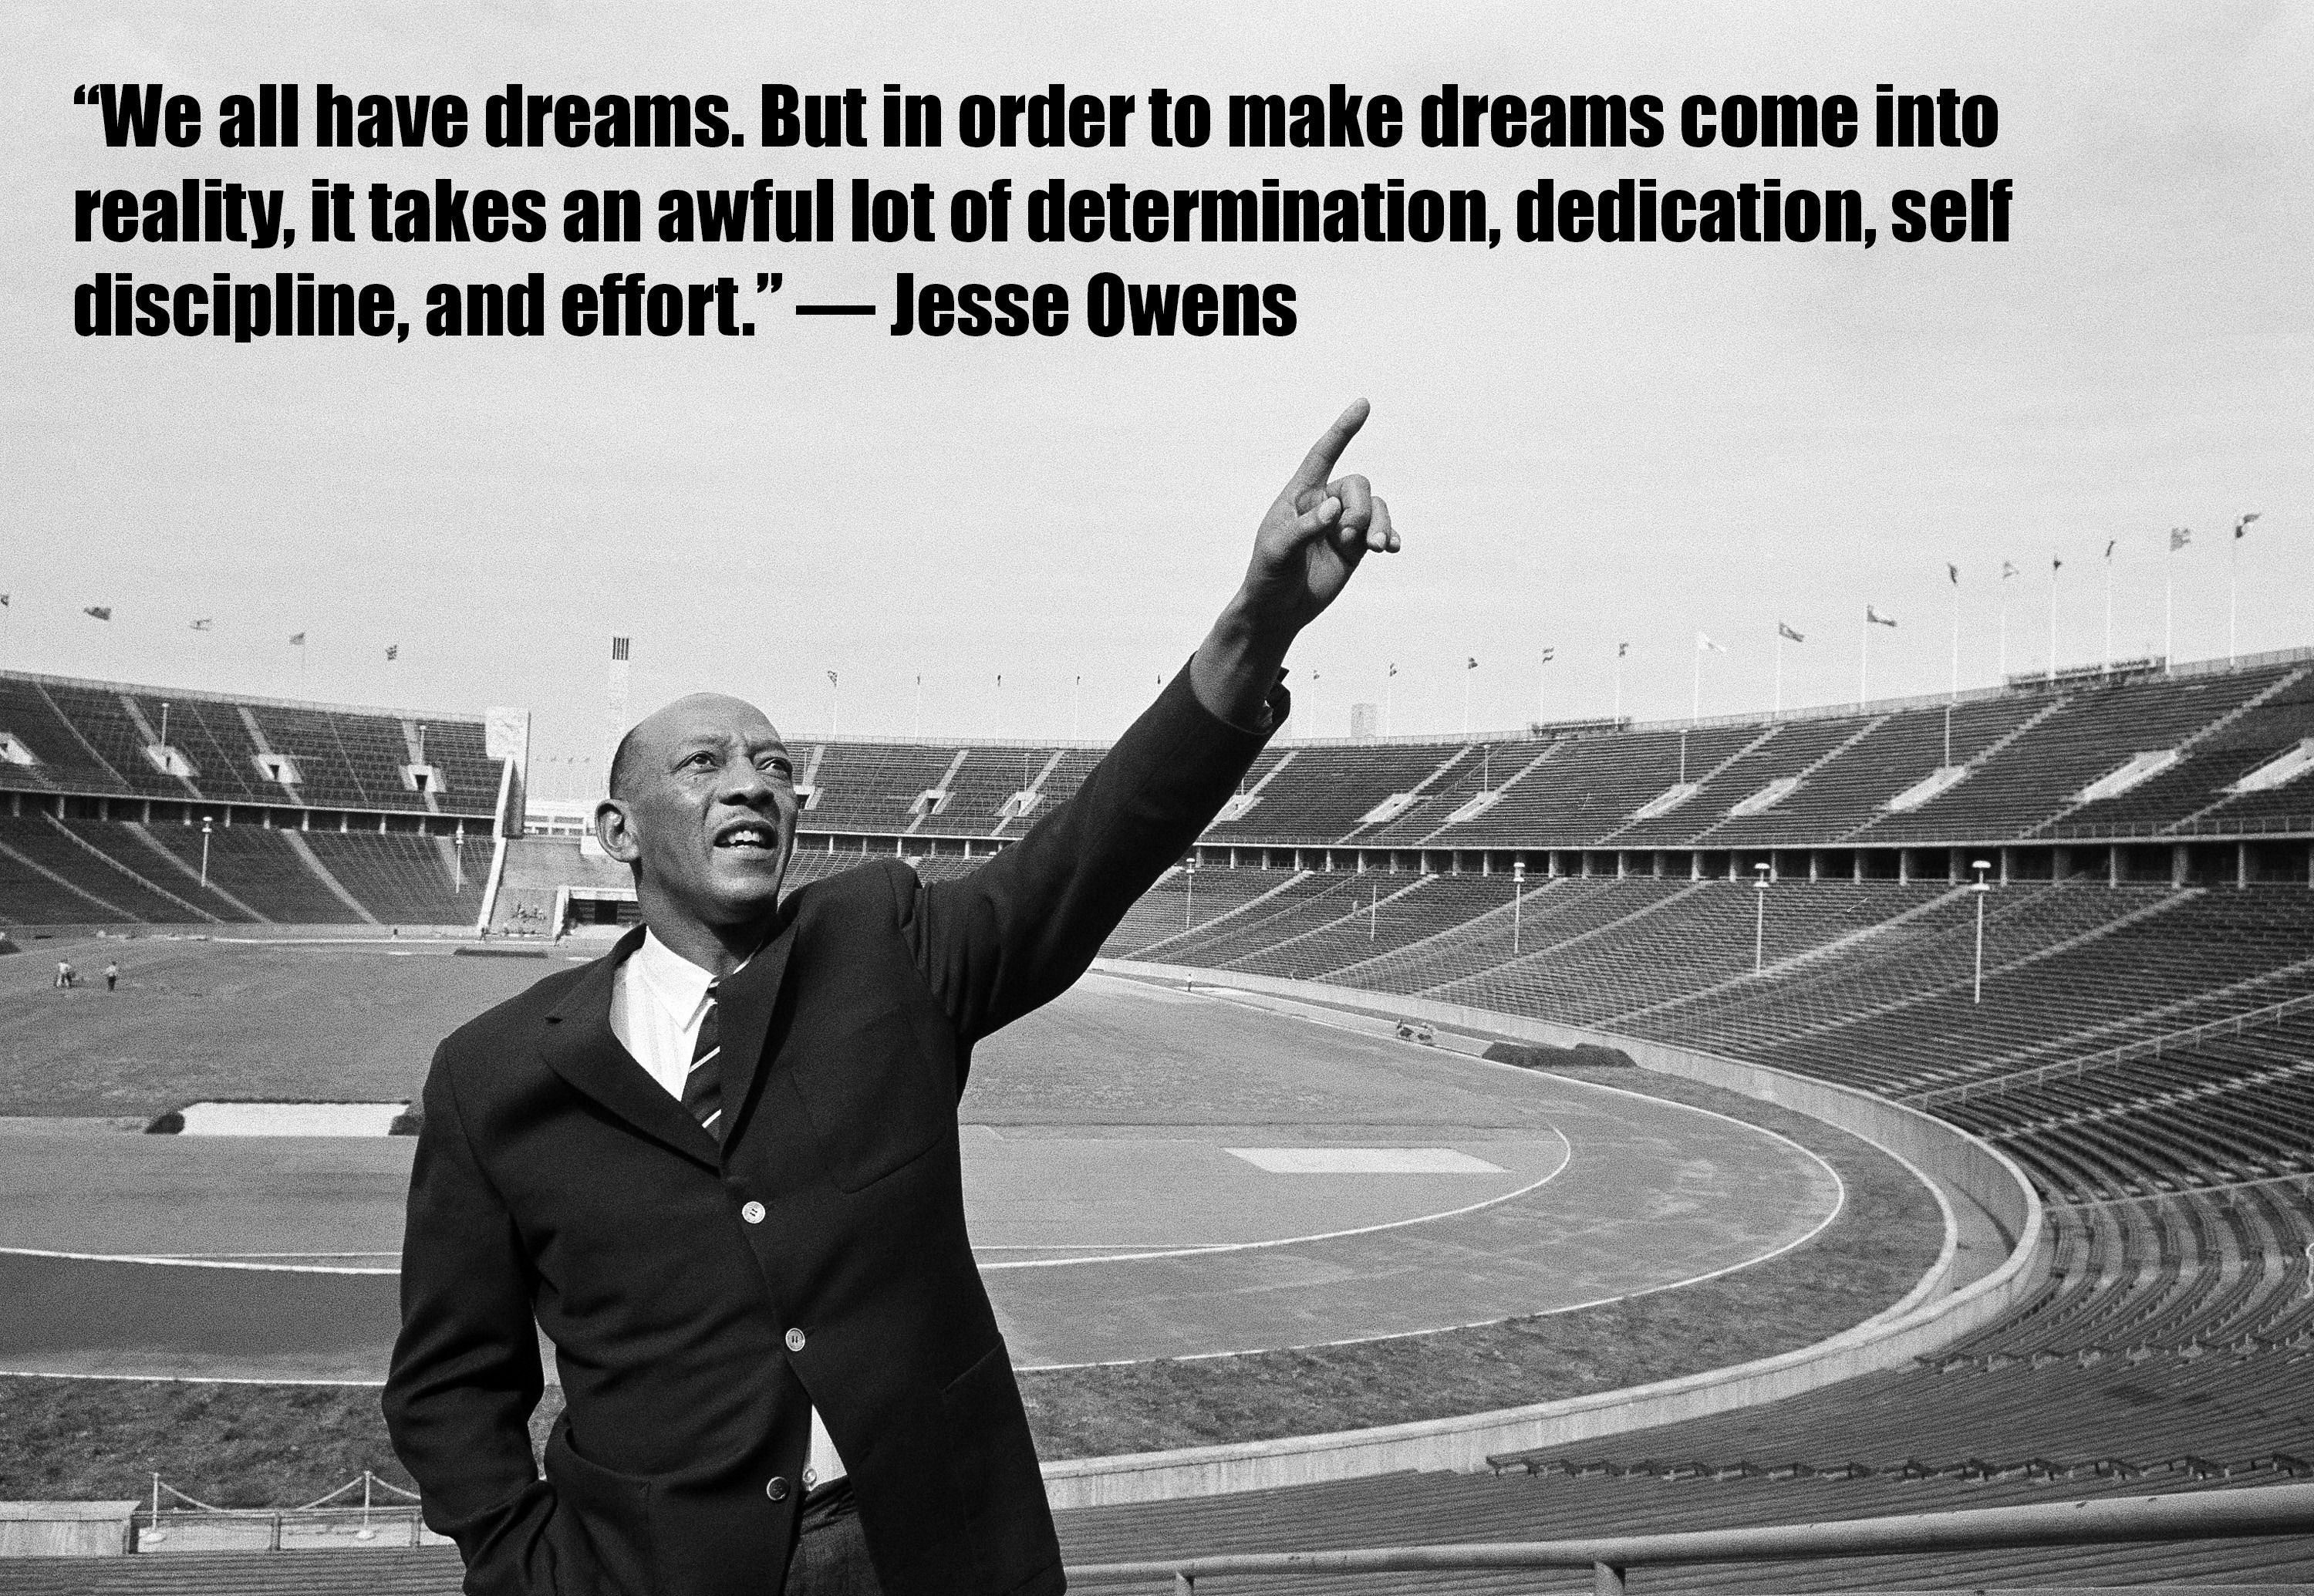 Olympic Inspiration: Jesse Owens On Dreams